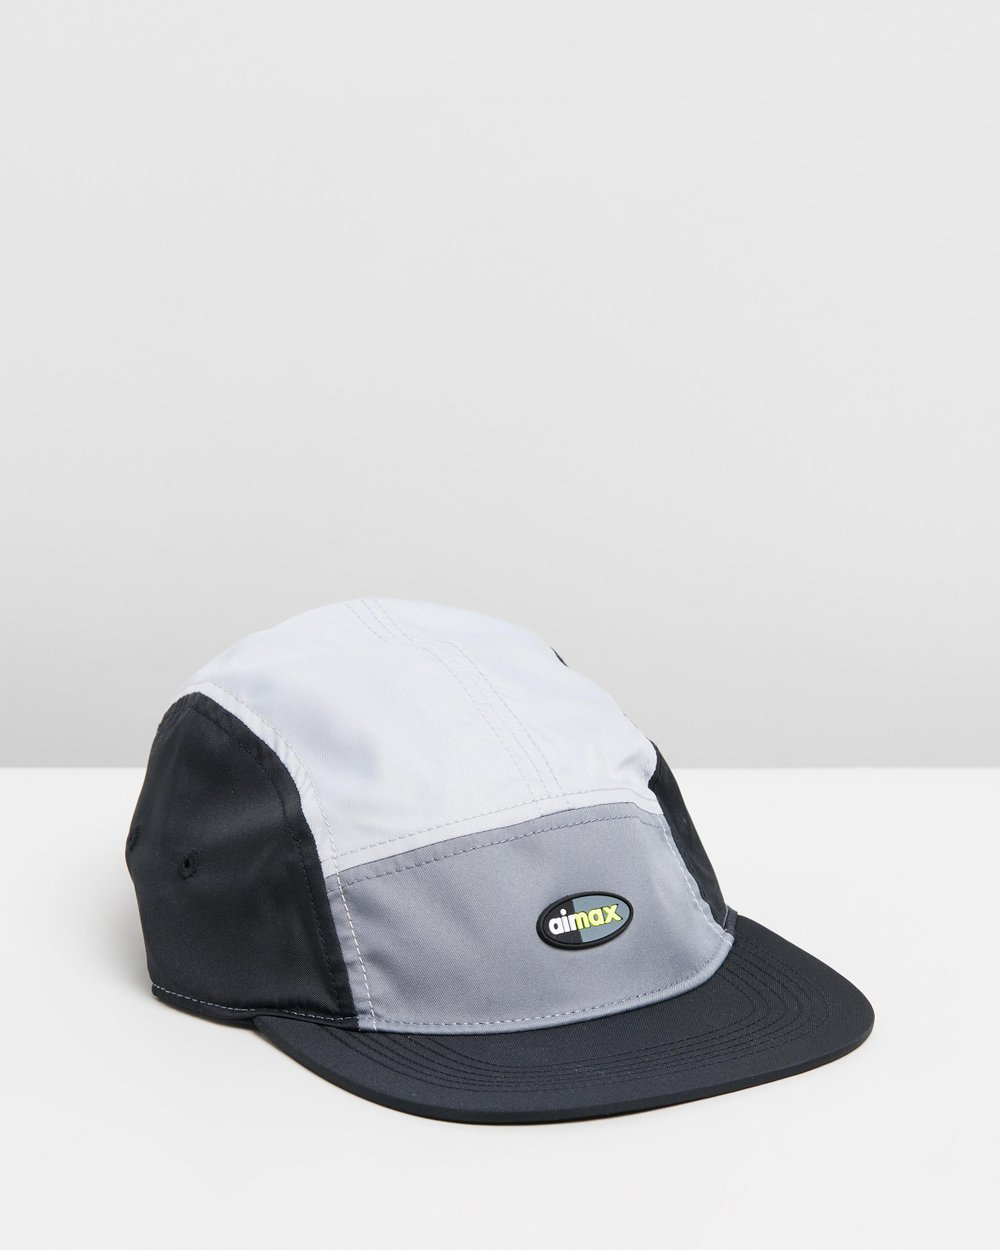 ee3f27b03c5 Aerobill AW84 Air Max Cap by Nike Online